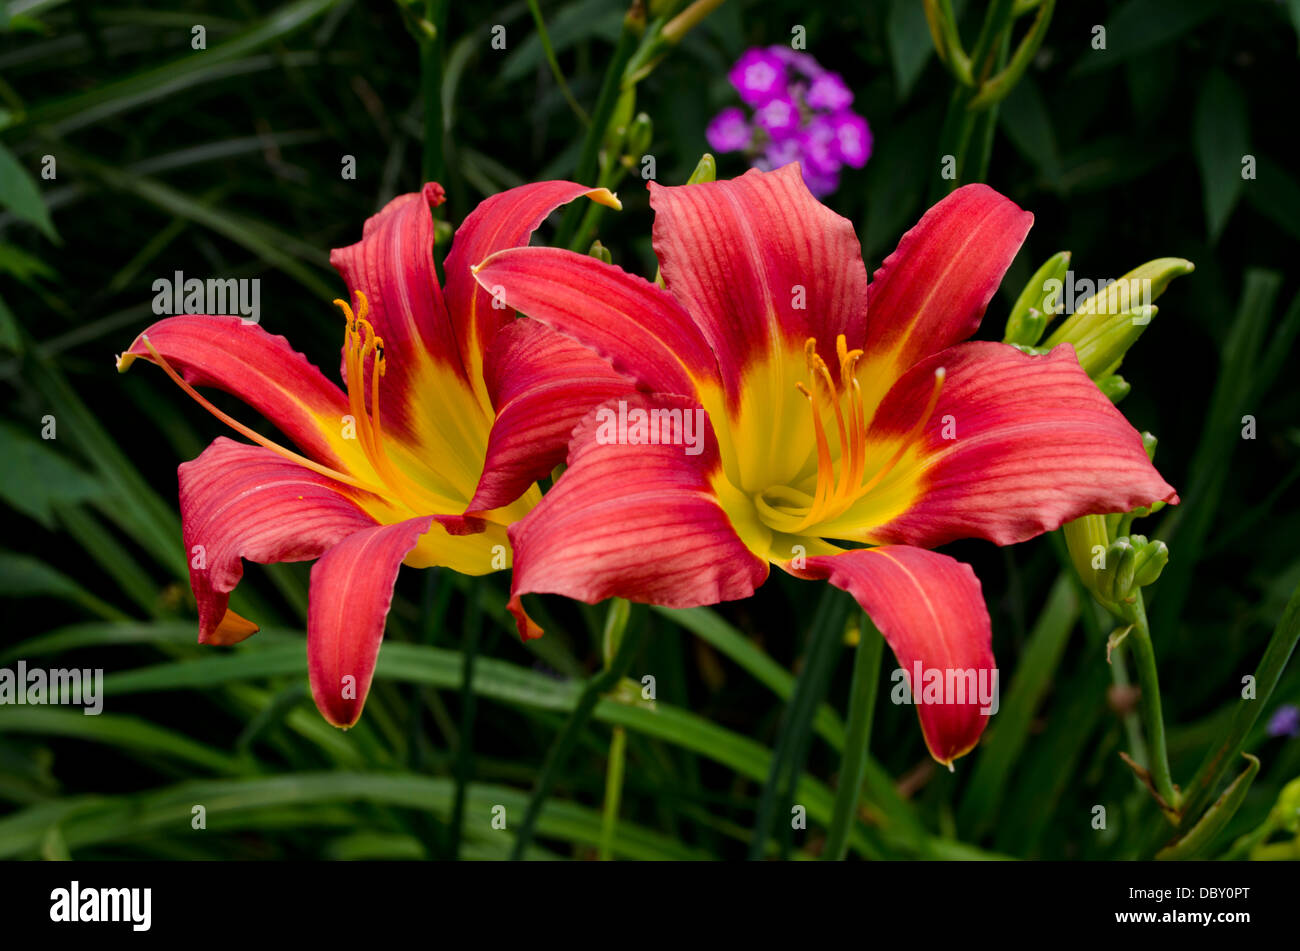 Brightly coloured red and yellow daylilies - Hemerocallis - in a summer garden. Stock Photo